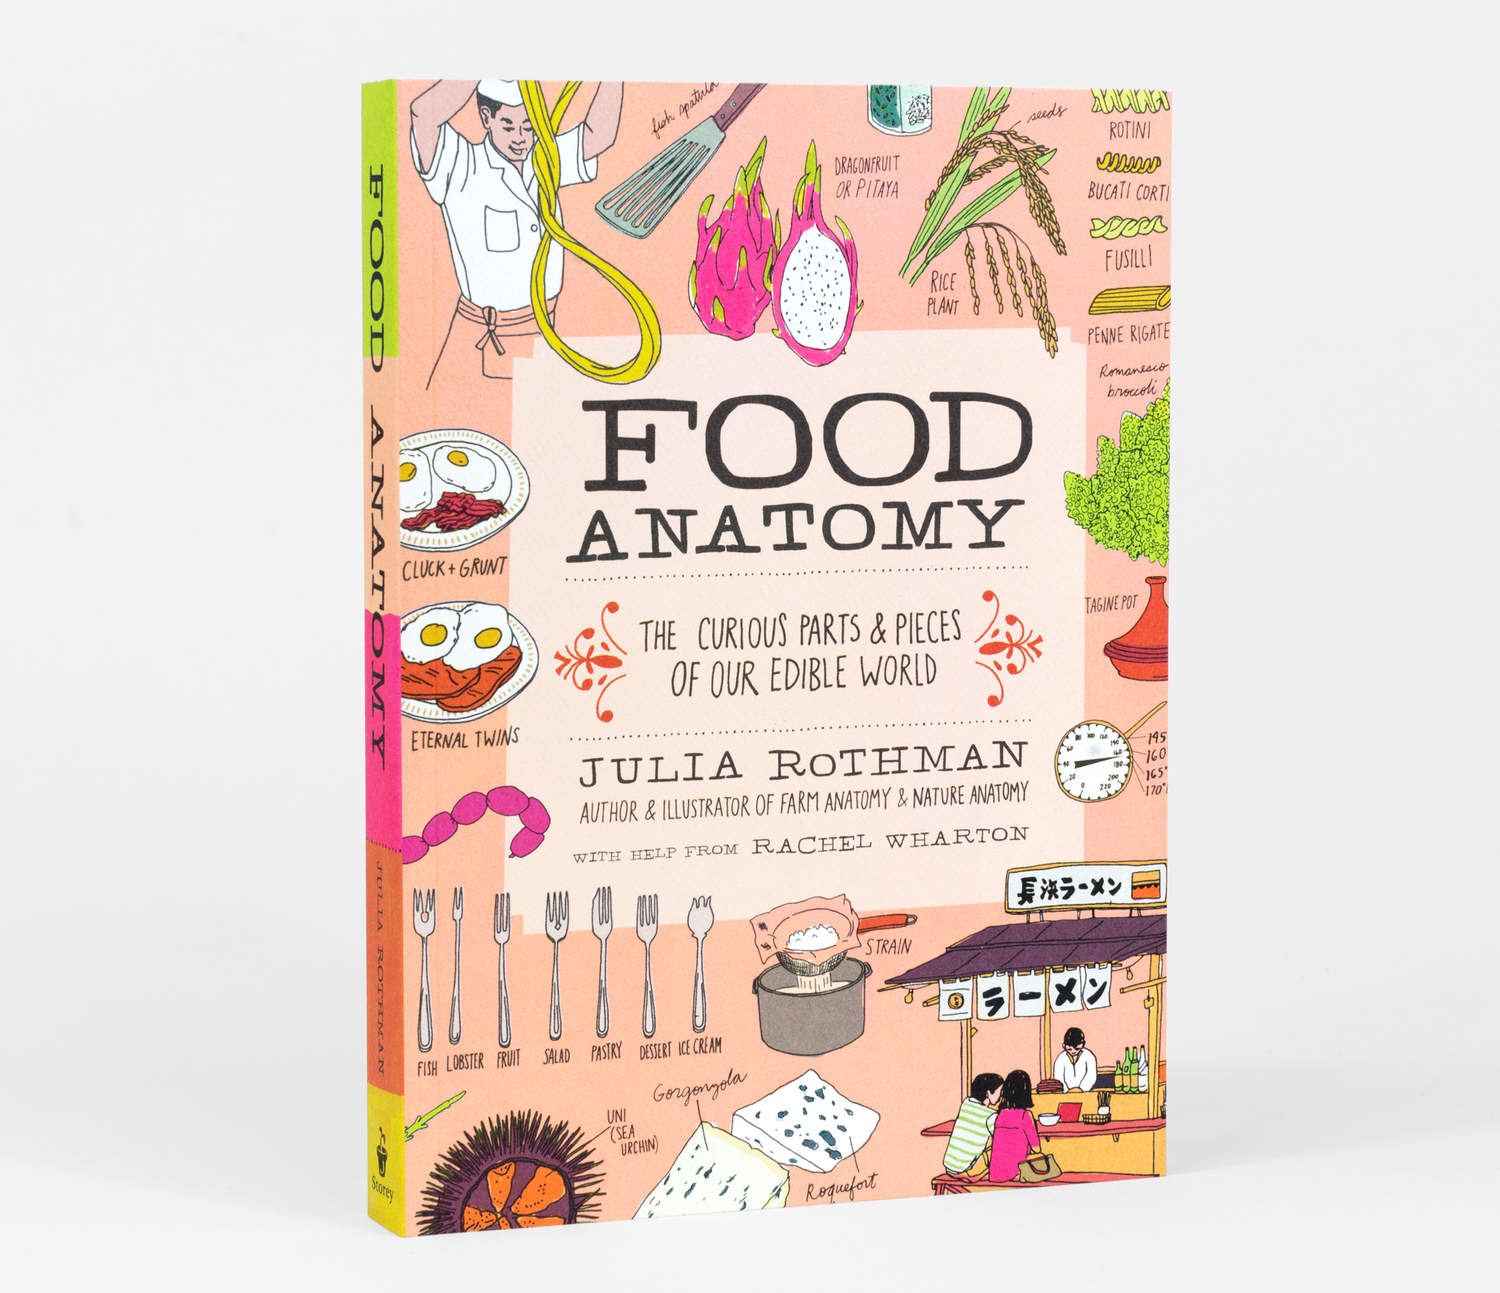 Julia Rothman - Food Anatomy at buyolympia.com